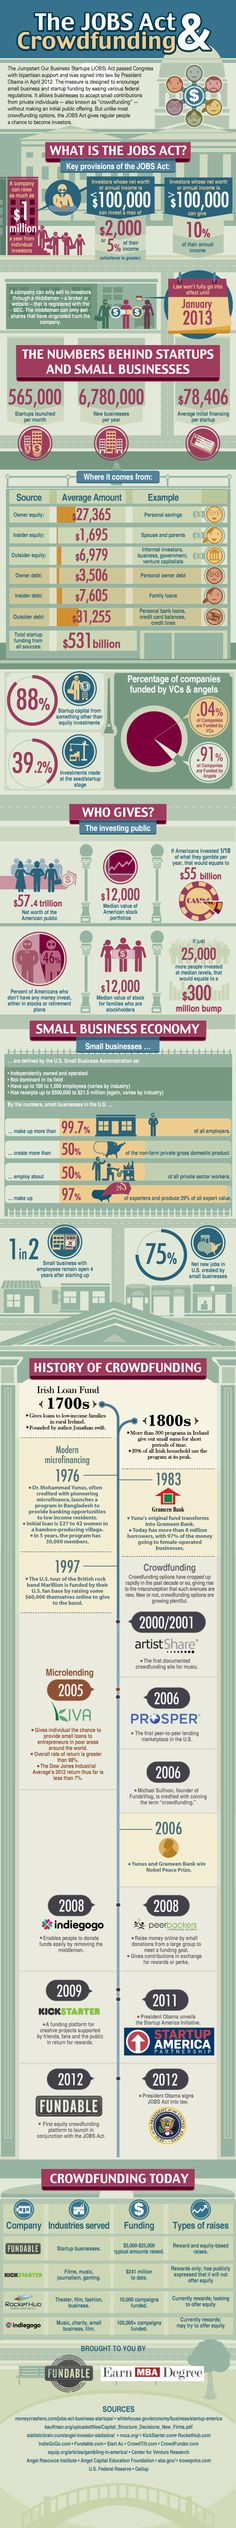 The JOBS Act & Crowdfunding [Infographic]